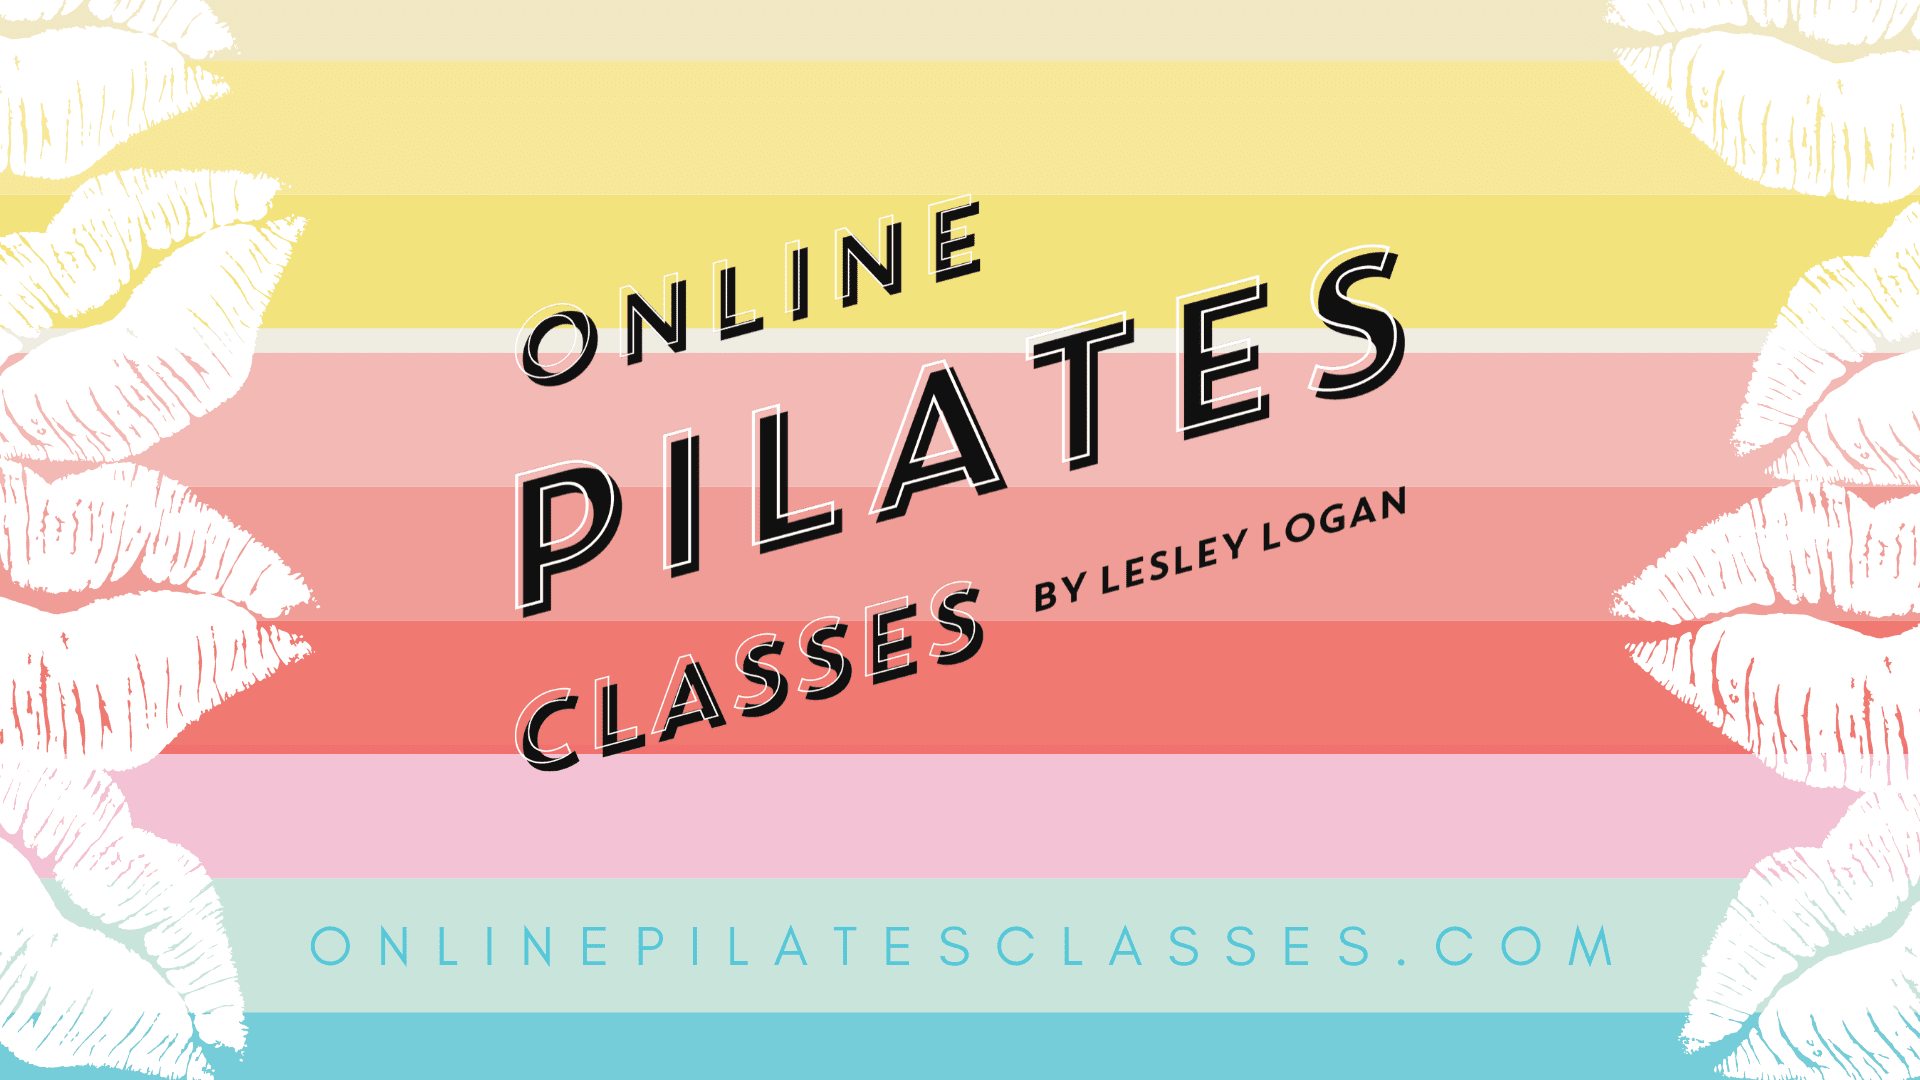 Online Pilates Classes Lips Logo Wallpaper v3